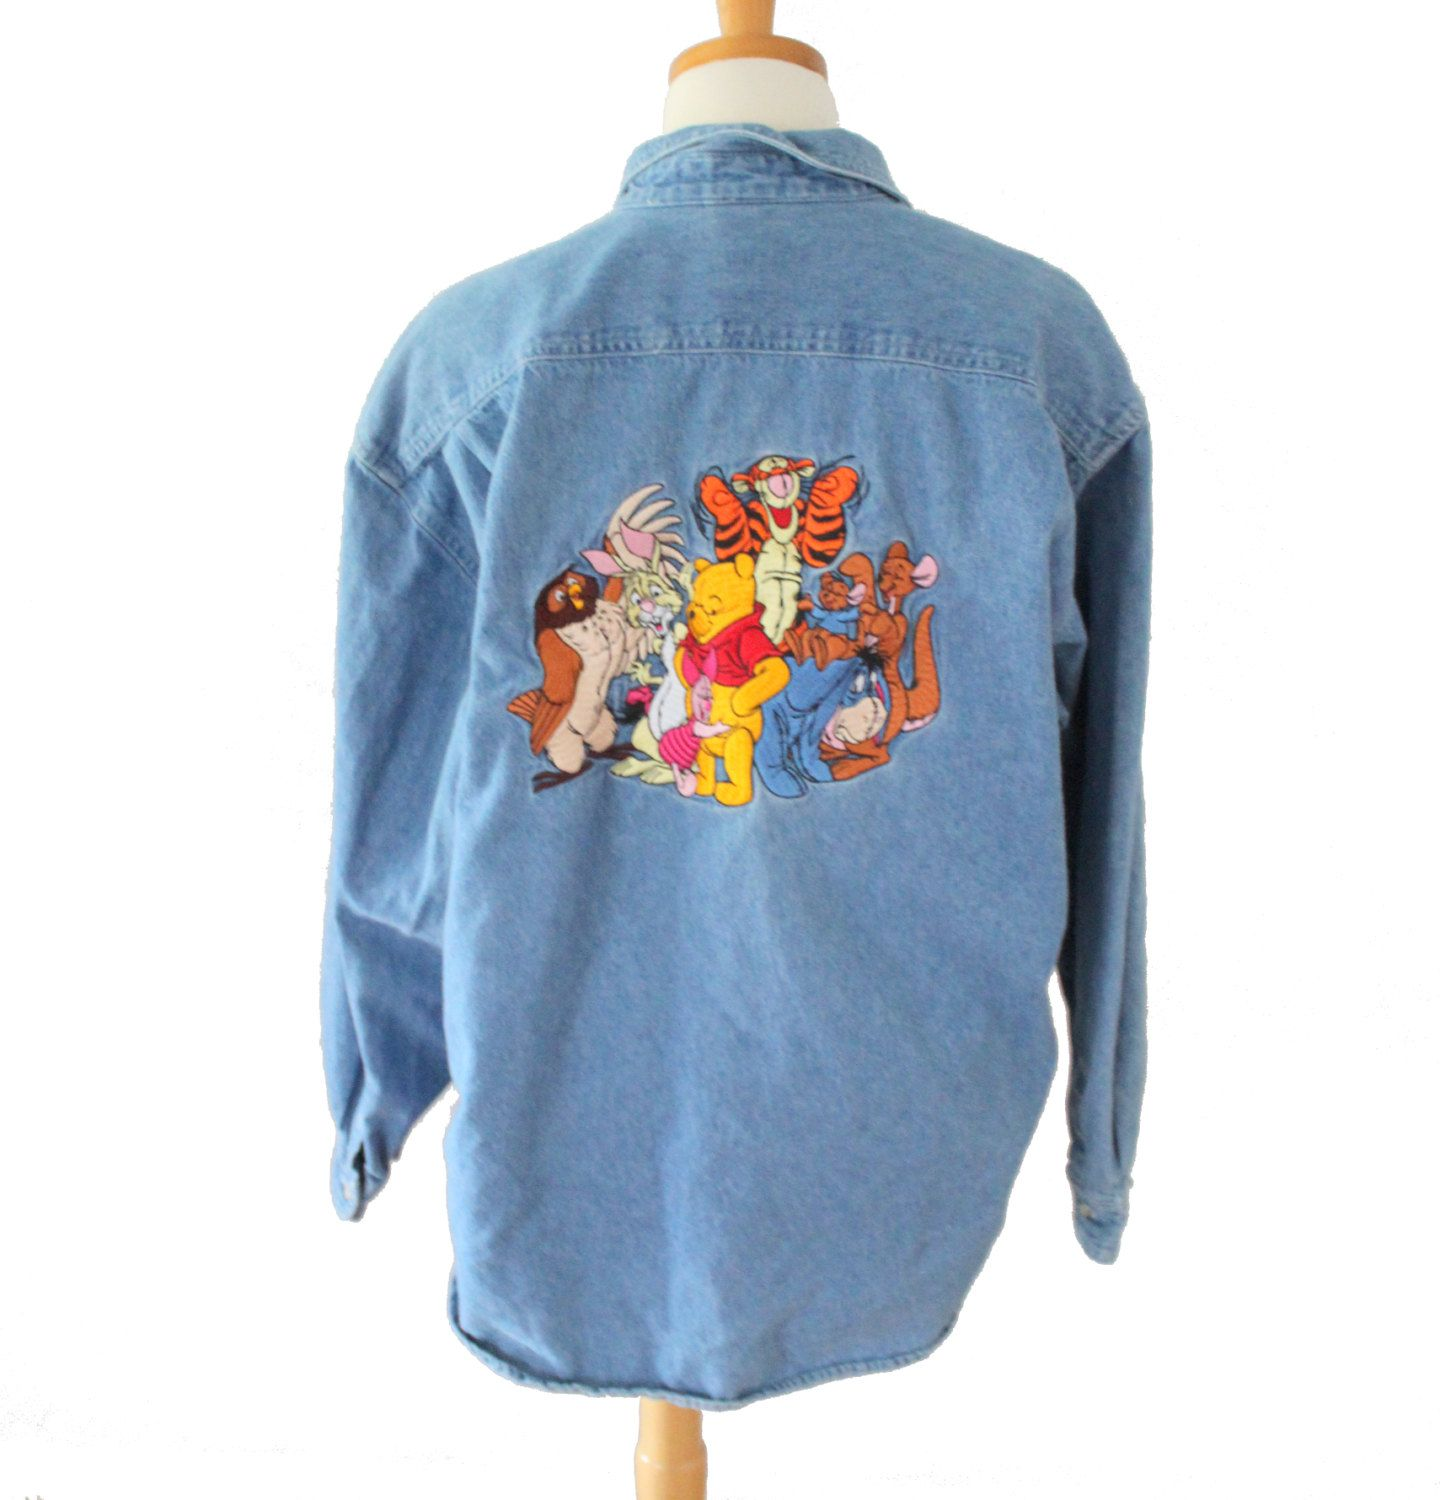 7e3c091c Vintage 90s Winnie the Pooh Tigger Embroidered Denim Shirt // Women L //  The Disney Store by bluebutterflyvintage on Etsy